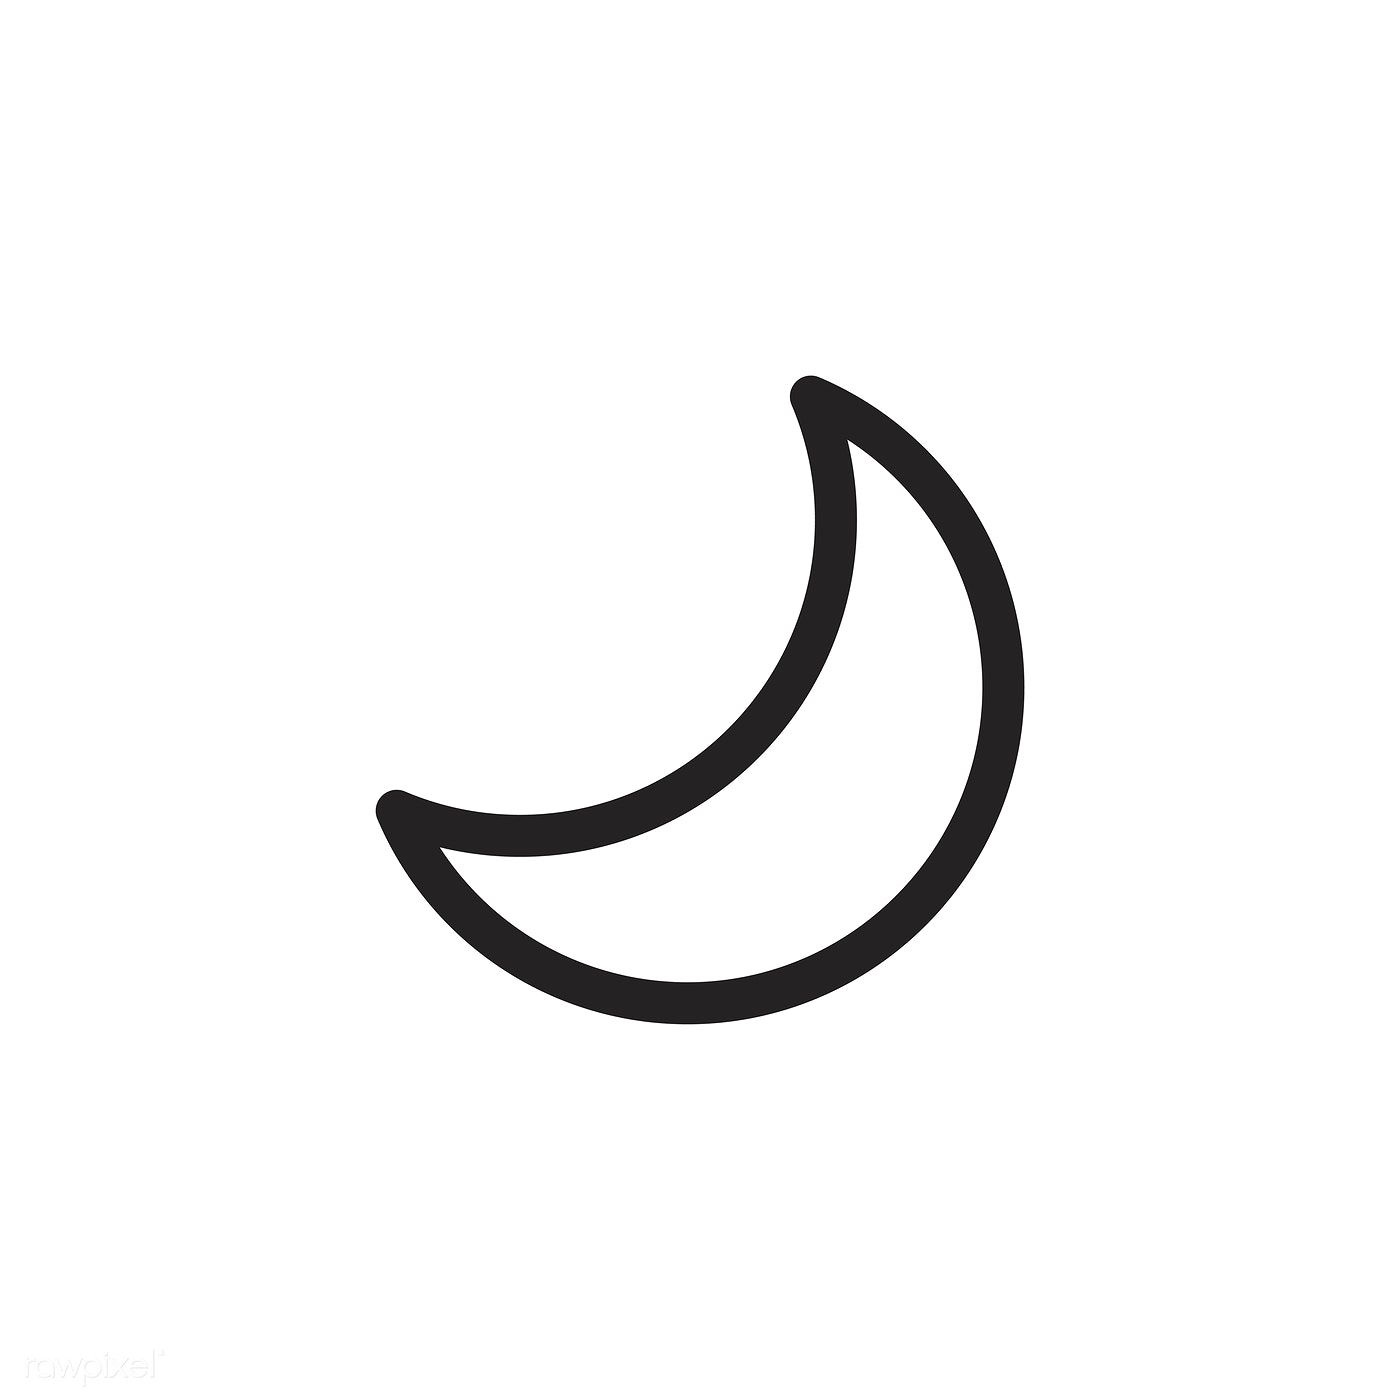 waxing crescent moon icon vector free image by rawpixel com moon icon crescent moon art moon logo waxing crescent moon icon vector free